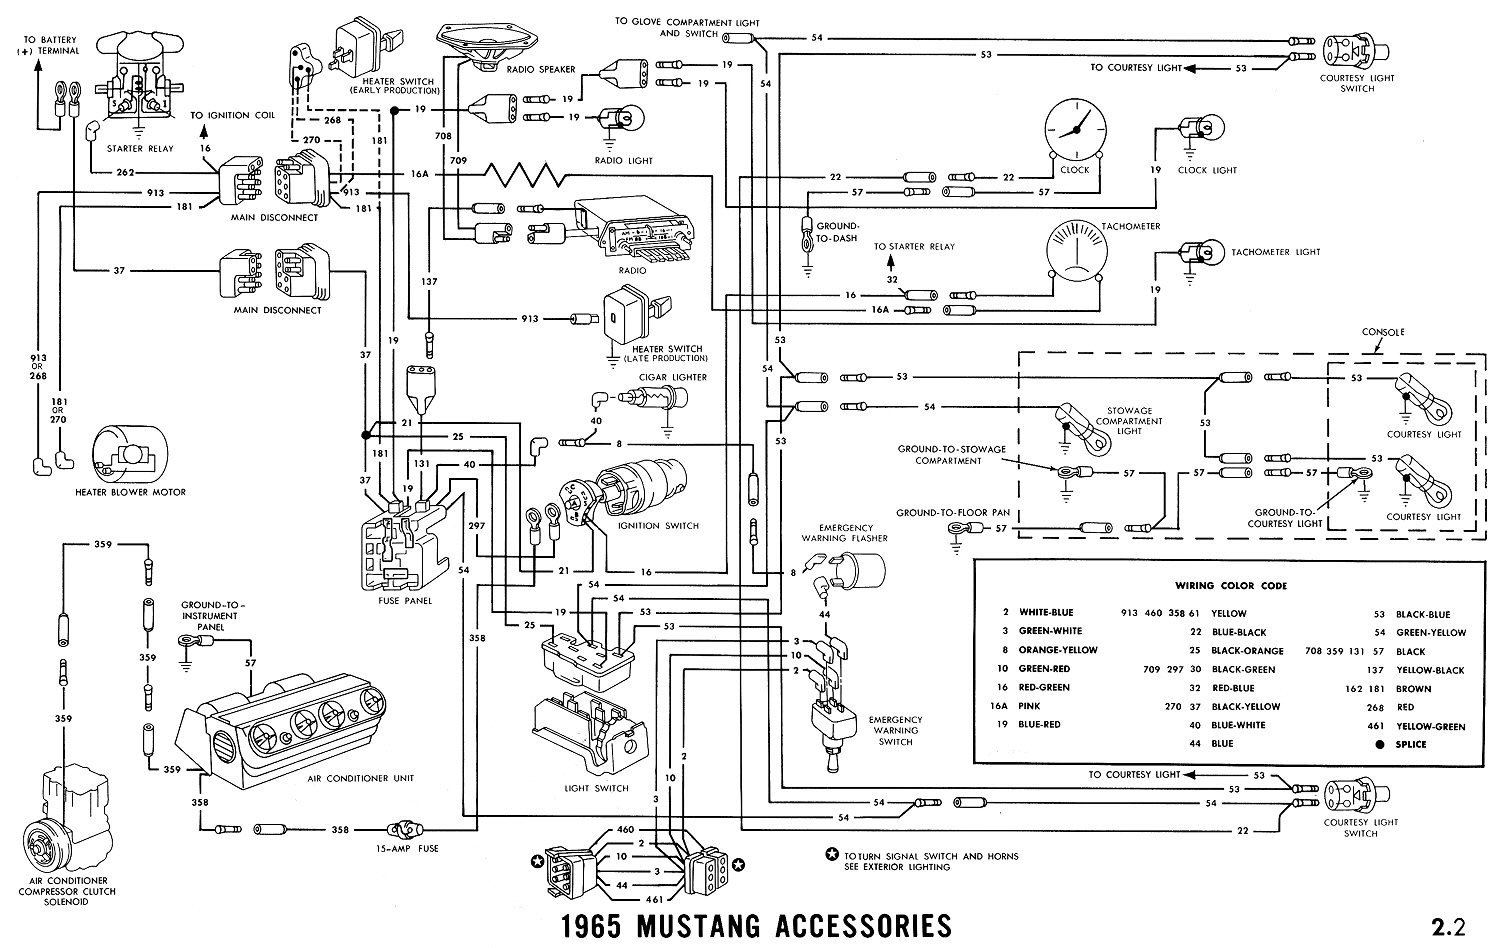 1965i 1965 mustang wiring diagrams average joe restoration wiring diagram 1968 ford mustang coupe at bayanpartner.co